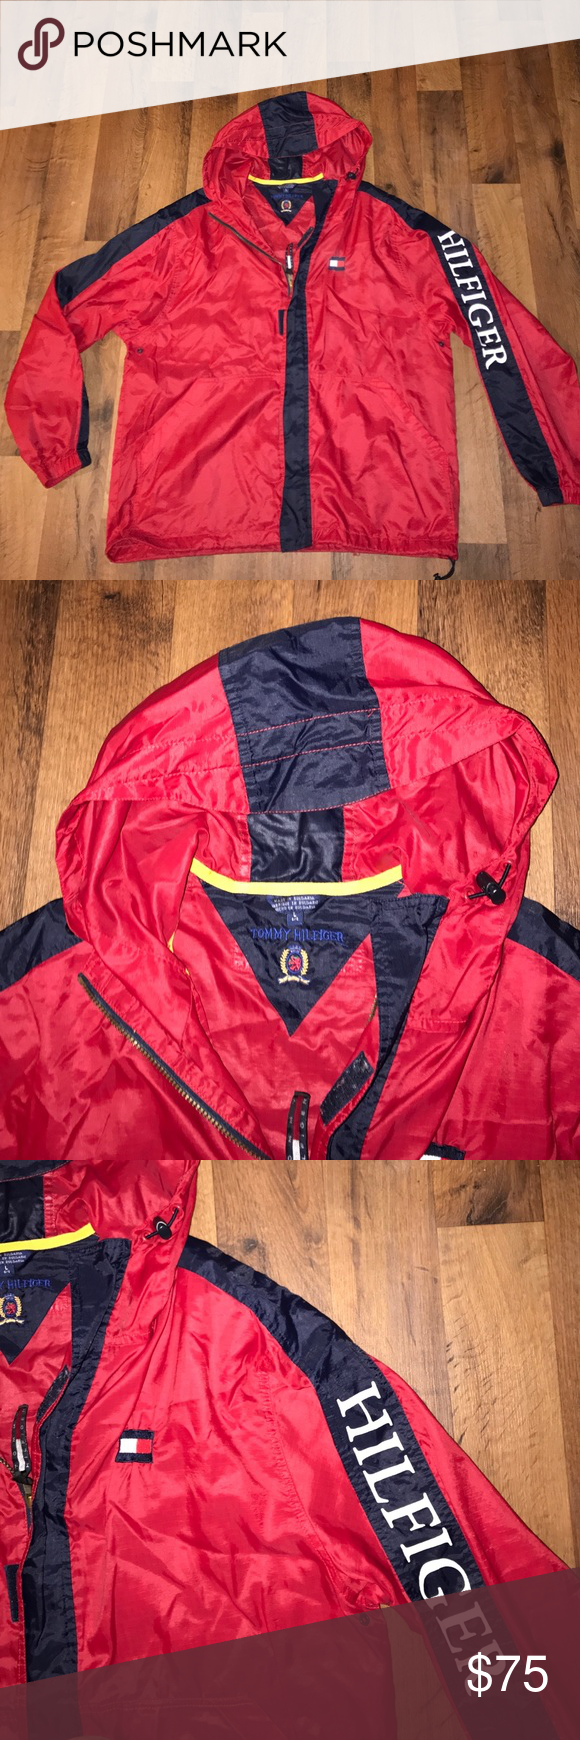 Vintage Large Tommy Hilfiger Spell Out Jacket Red Excellent condition Tommy Hilfiger Jackets & Coats Windbreakers